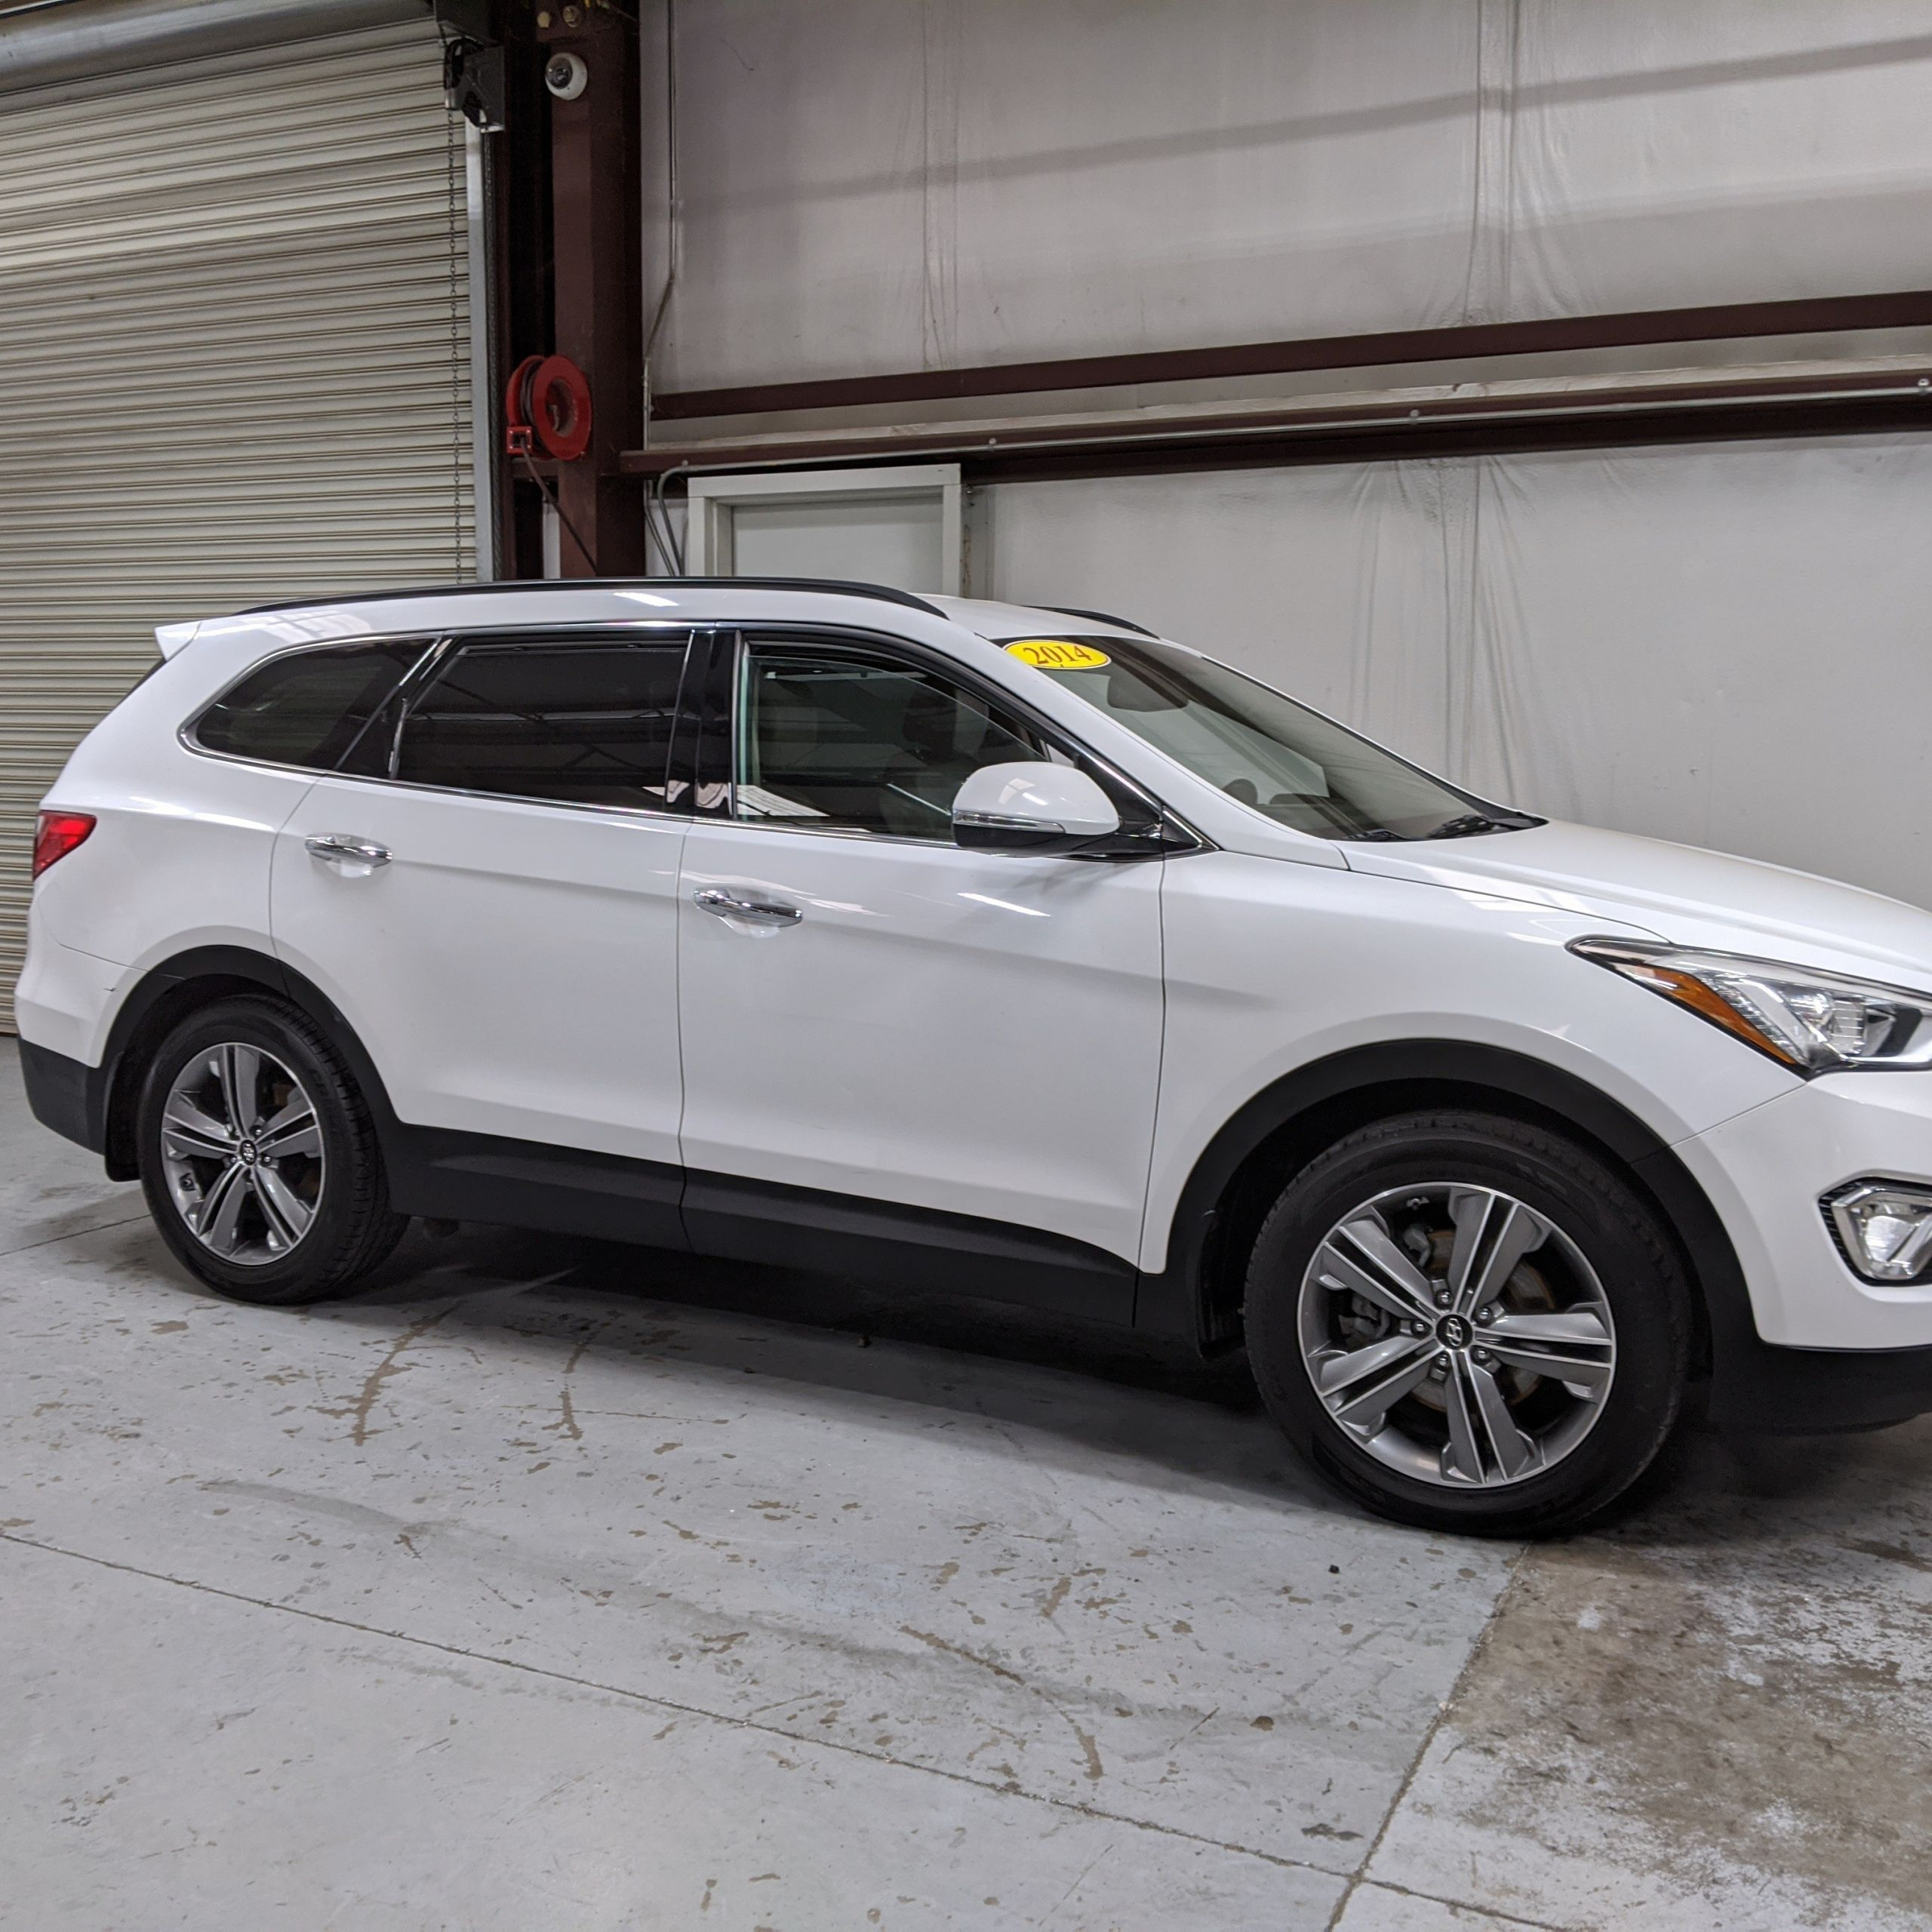 Cars for Sale Near Me with 3rd Row Seating Beautiful 2014 Hyundai Santa Fe Fwd 4dr Gls